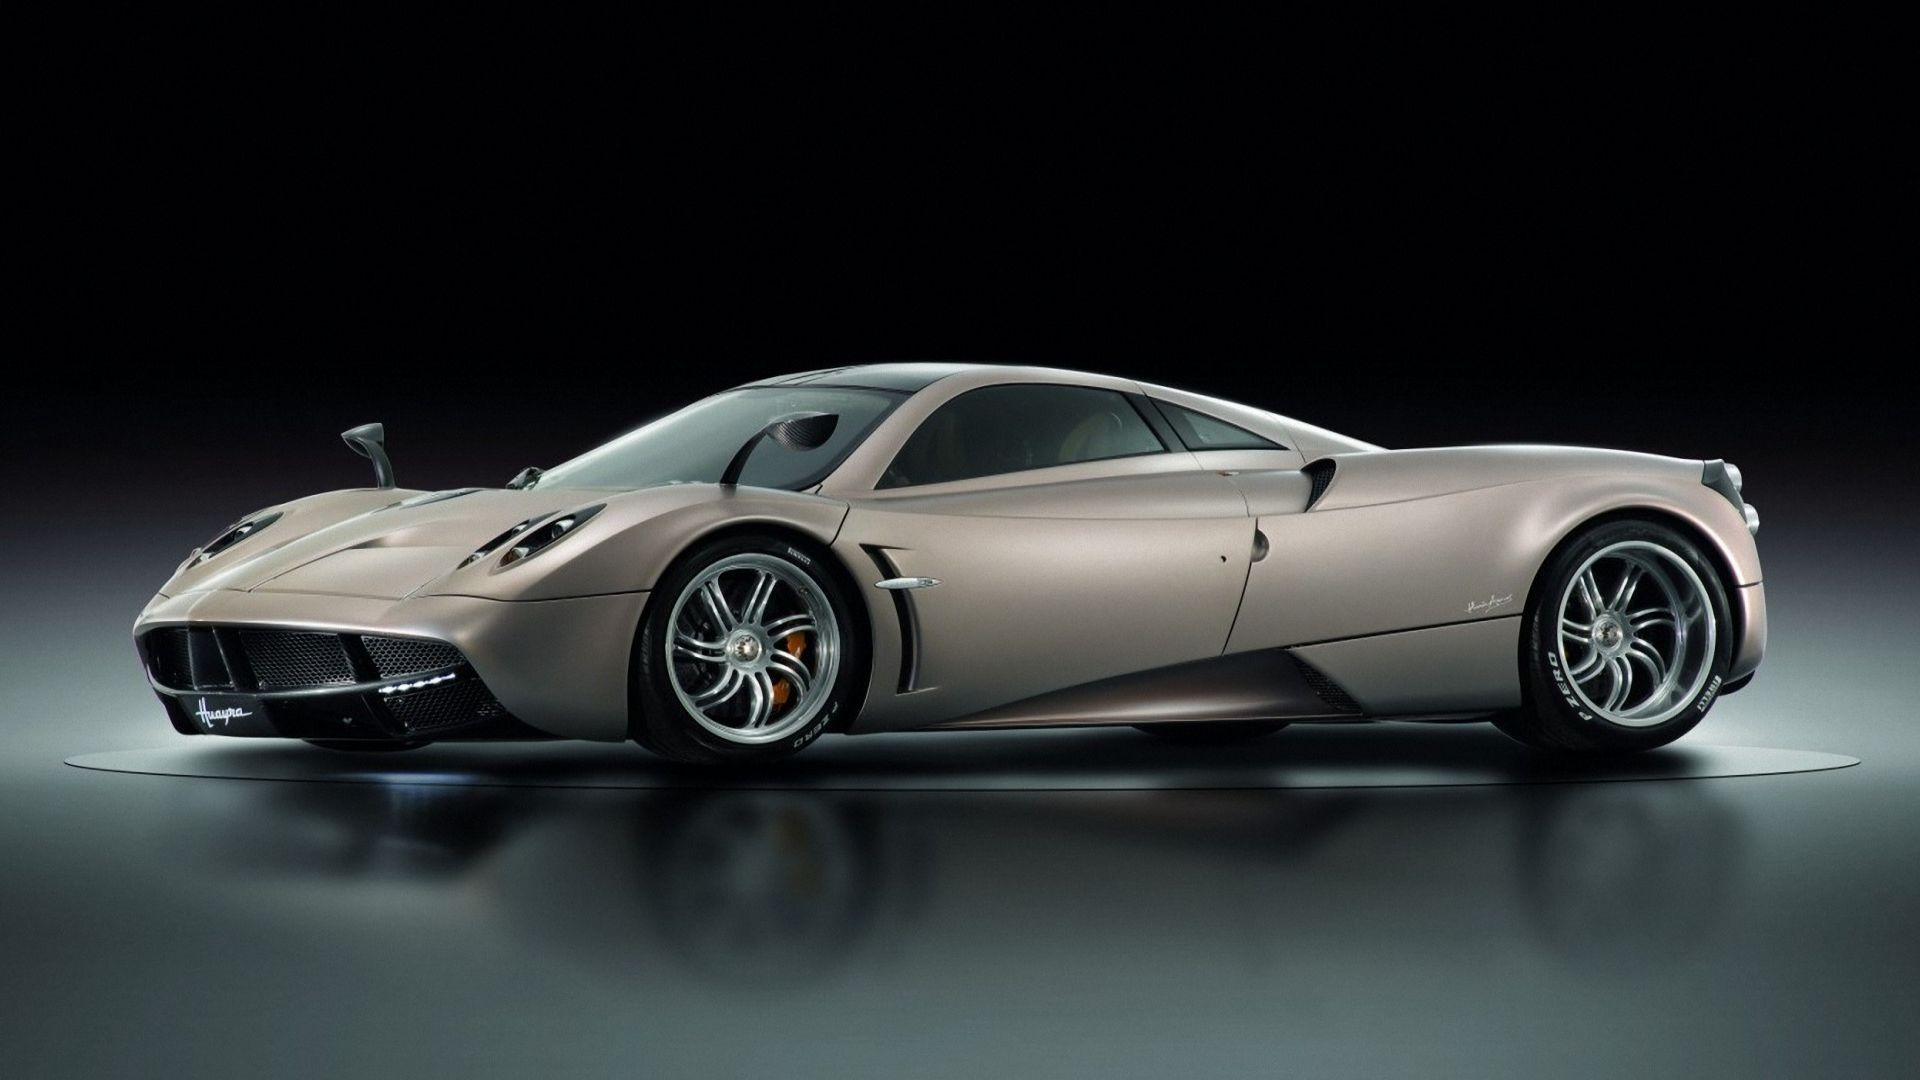 Delightful Pagani Huayra Wallpaper Full HD For Laptop 55241 Full HD Wallpaper . Photo